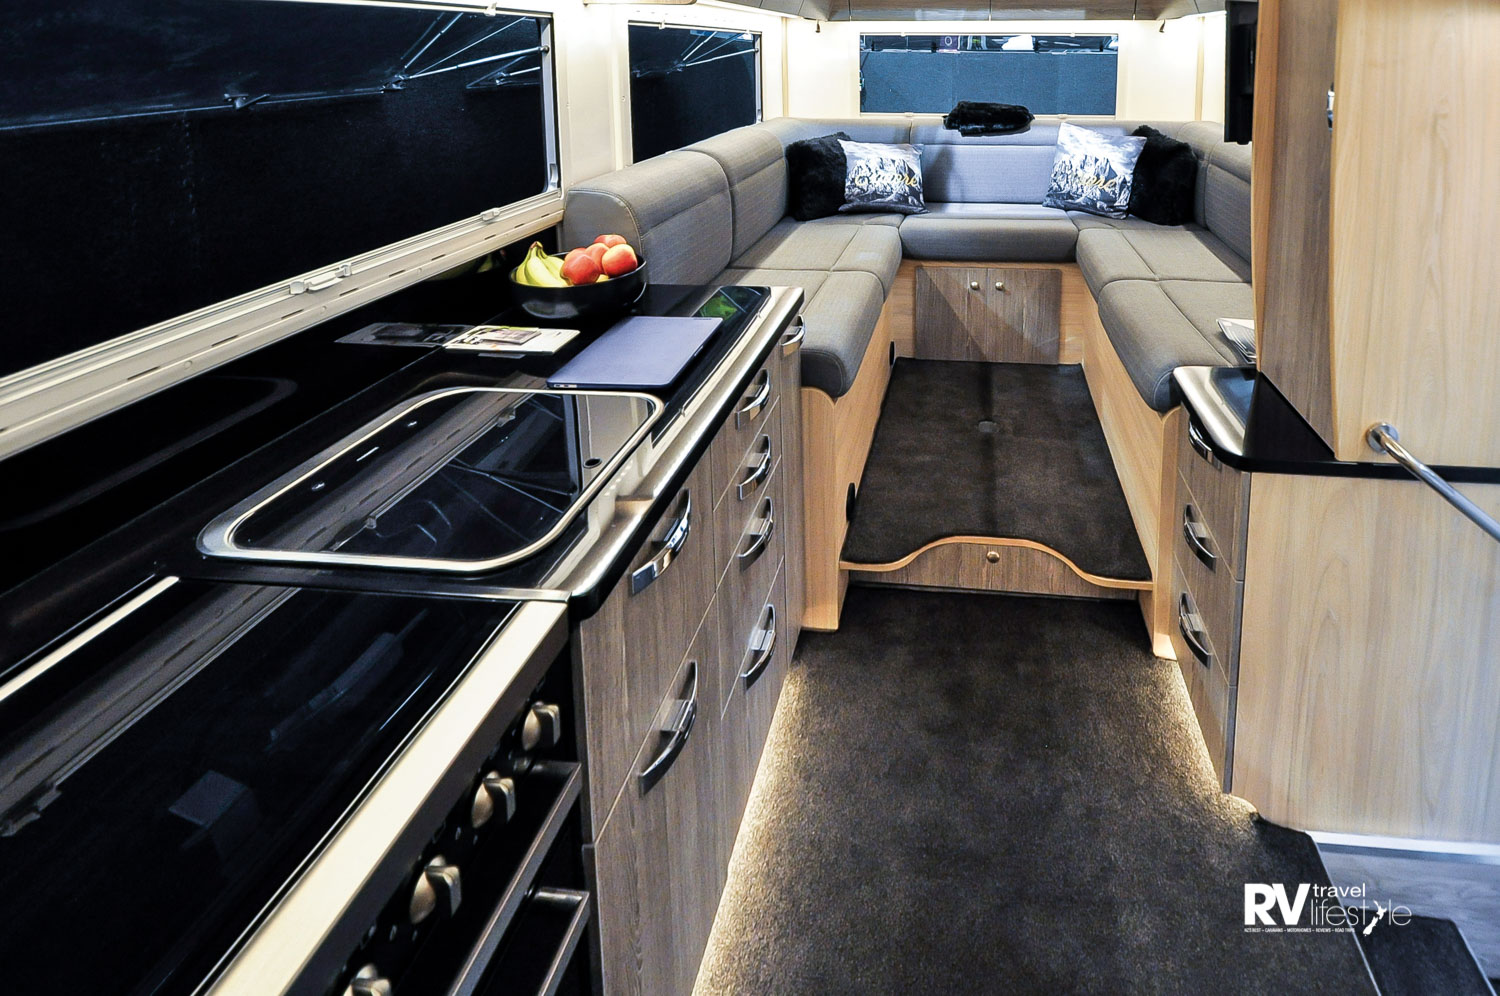 Habitation entry is on the left passenger side mid vehicle, kitchen opposite, large lounge-dining area at the rear, plenty of overhead locker storage